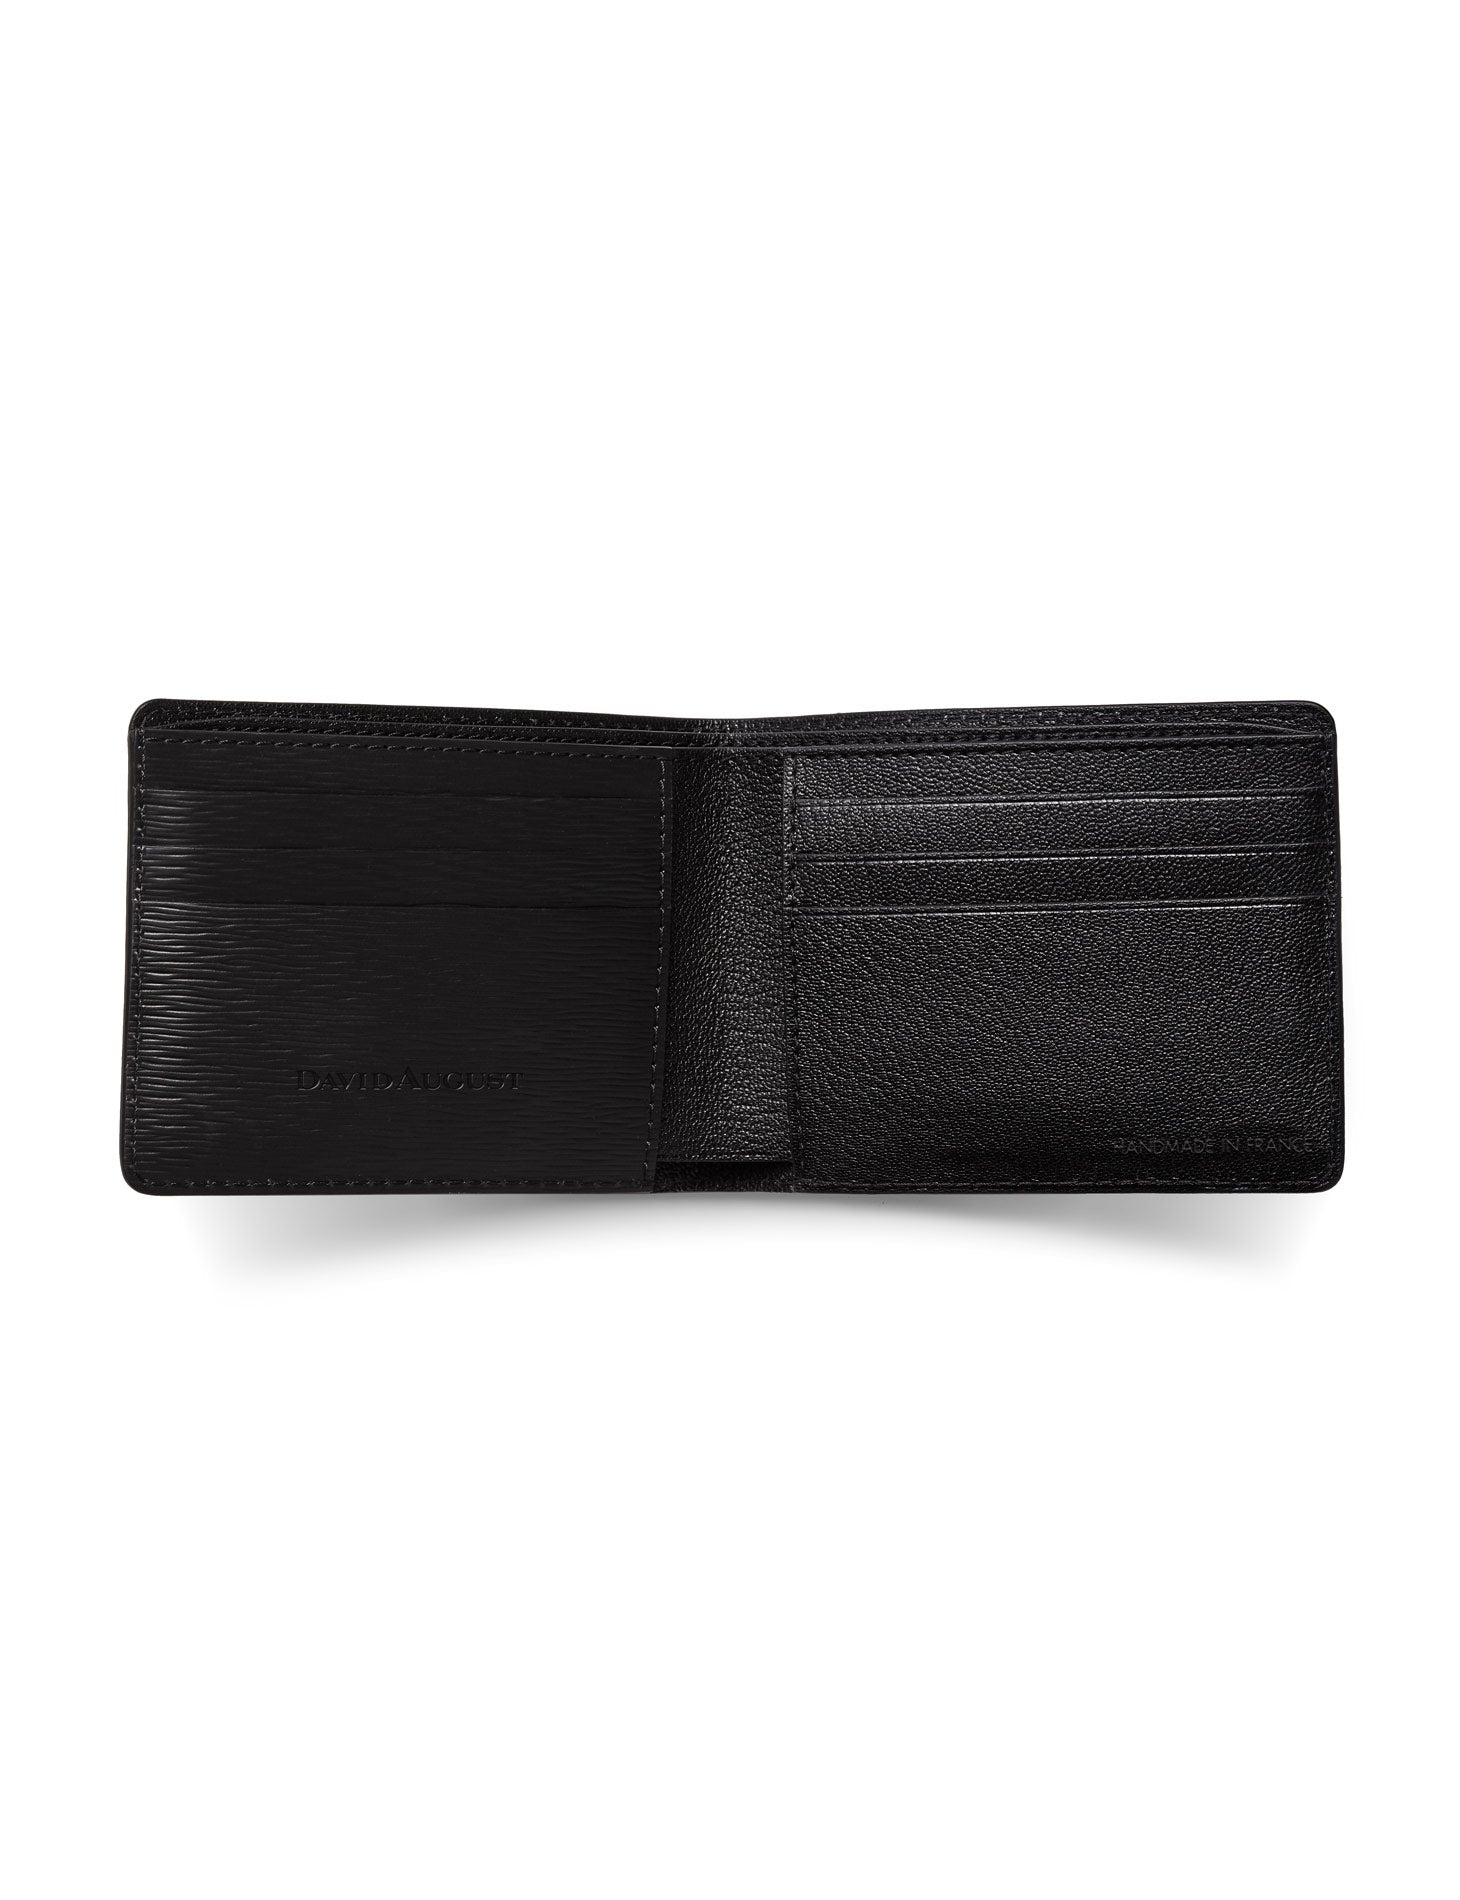 David August Luxury Genuine Epi Leather Bi-Fold Wallet in Black